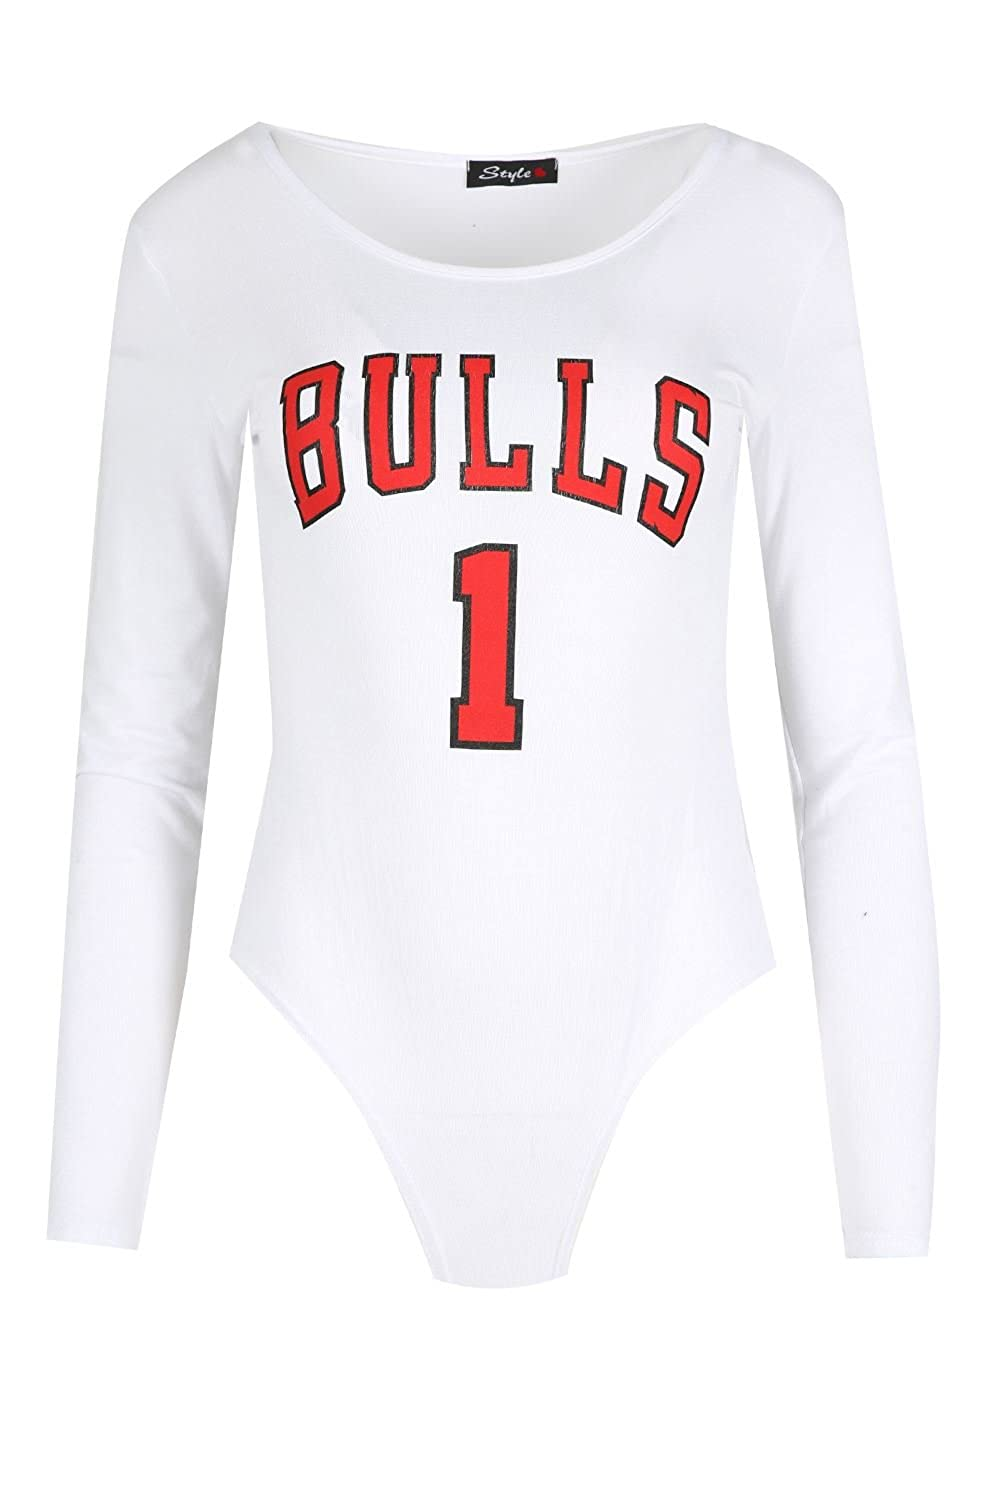 Be Jealous Womens Varsity USA BULLS 1 Bodysuit Vest Full Sleeves Leotard Top